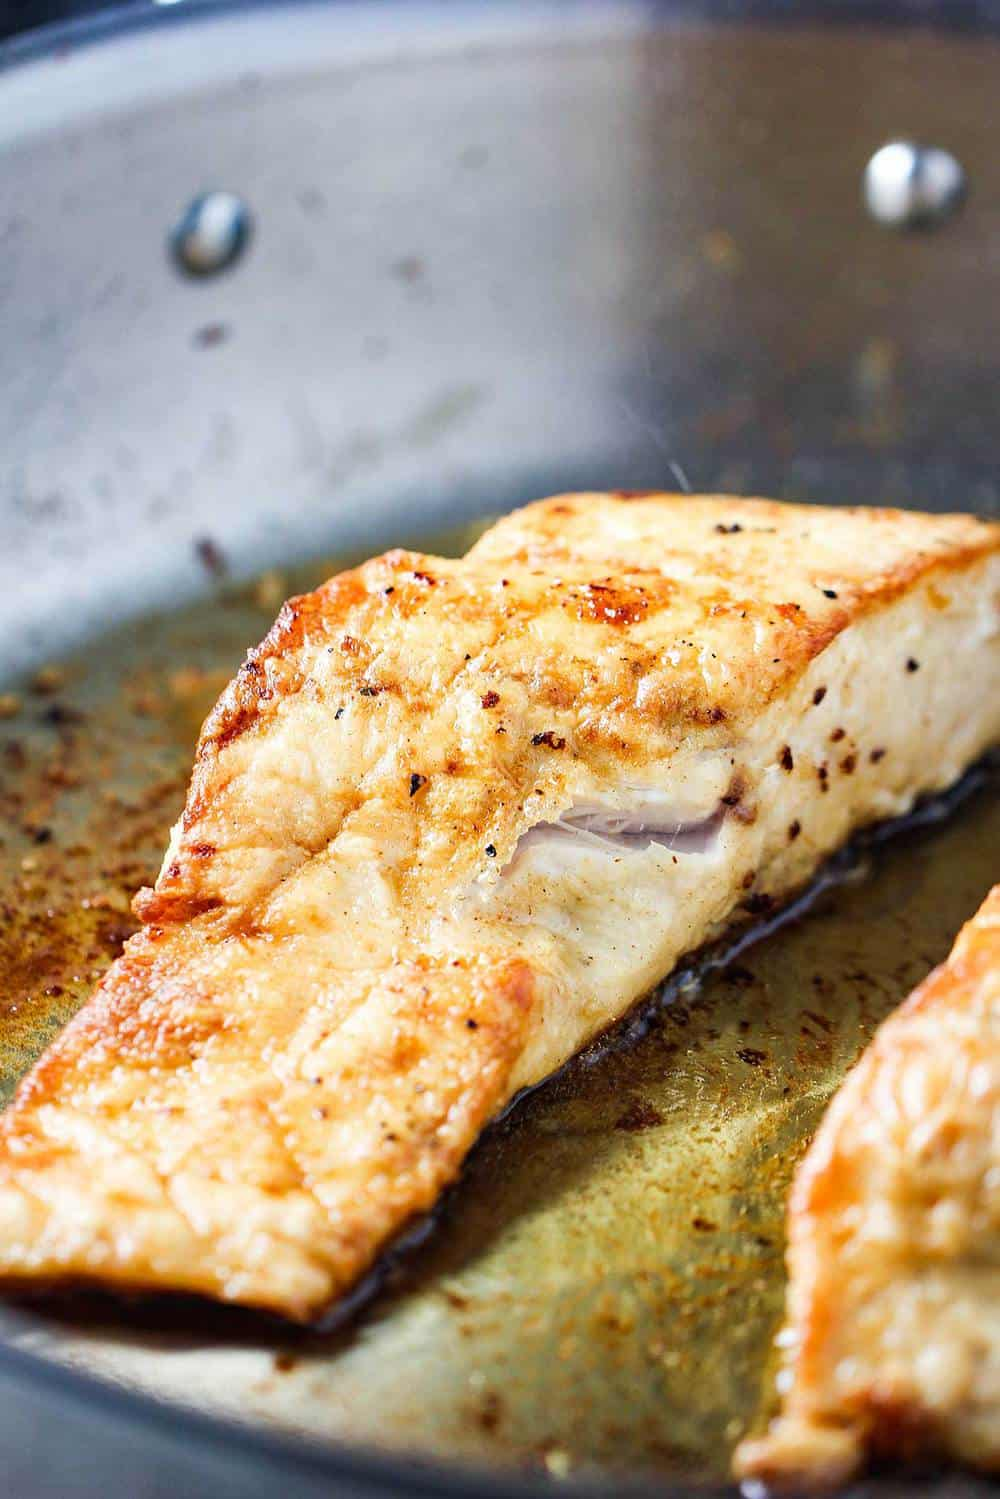 Wild striped bass being seared in a large skillet with olive oil.